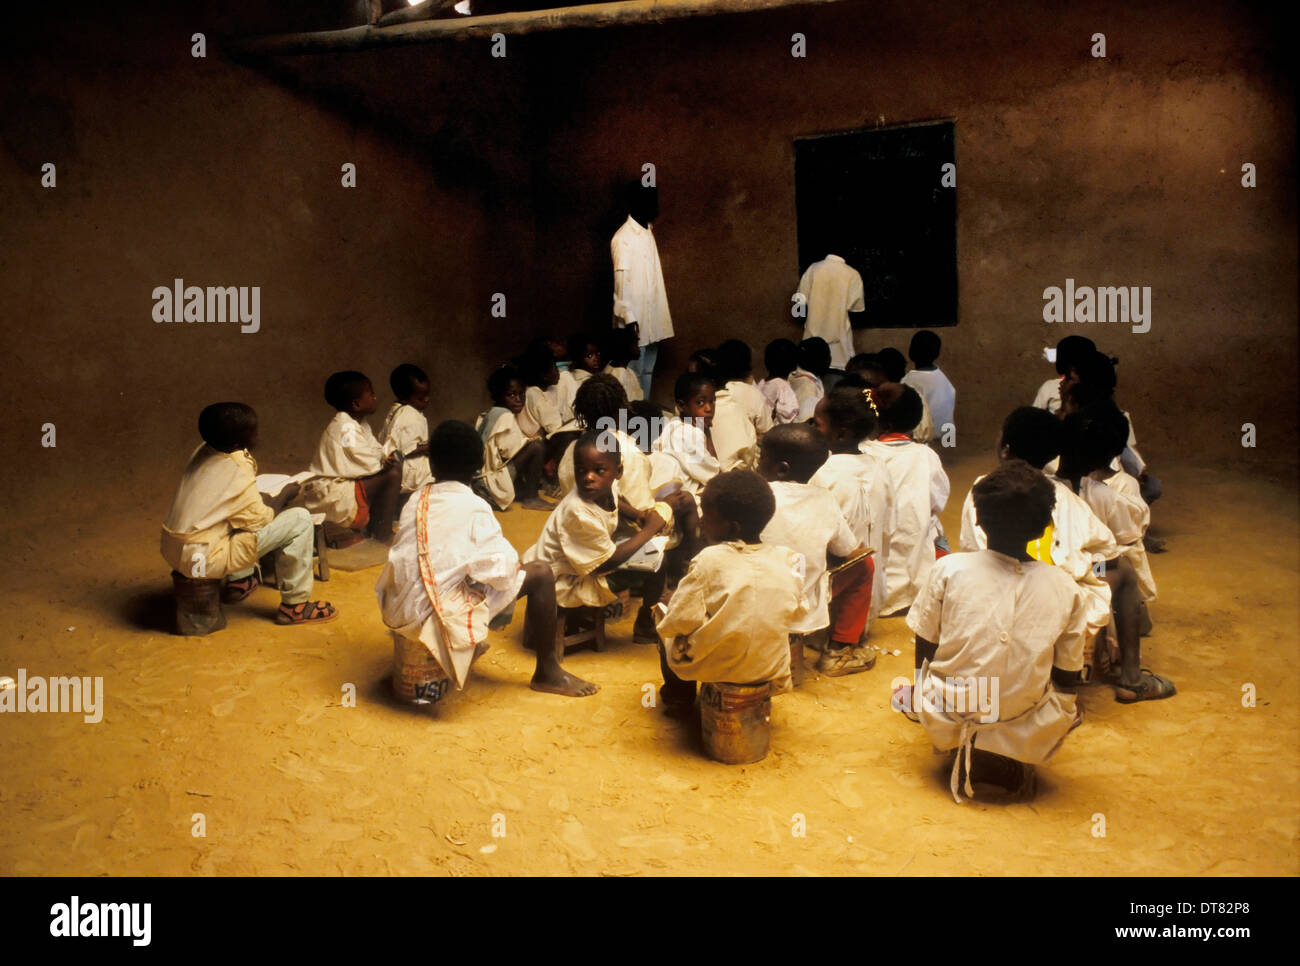 A group of children attending school using as seats U.S. humanitarian aid cans. - Stock Image